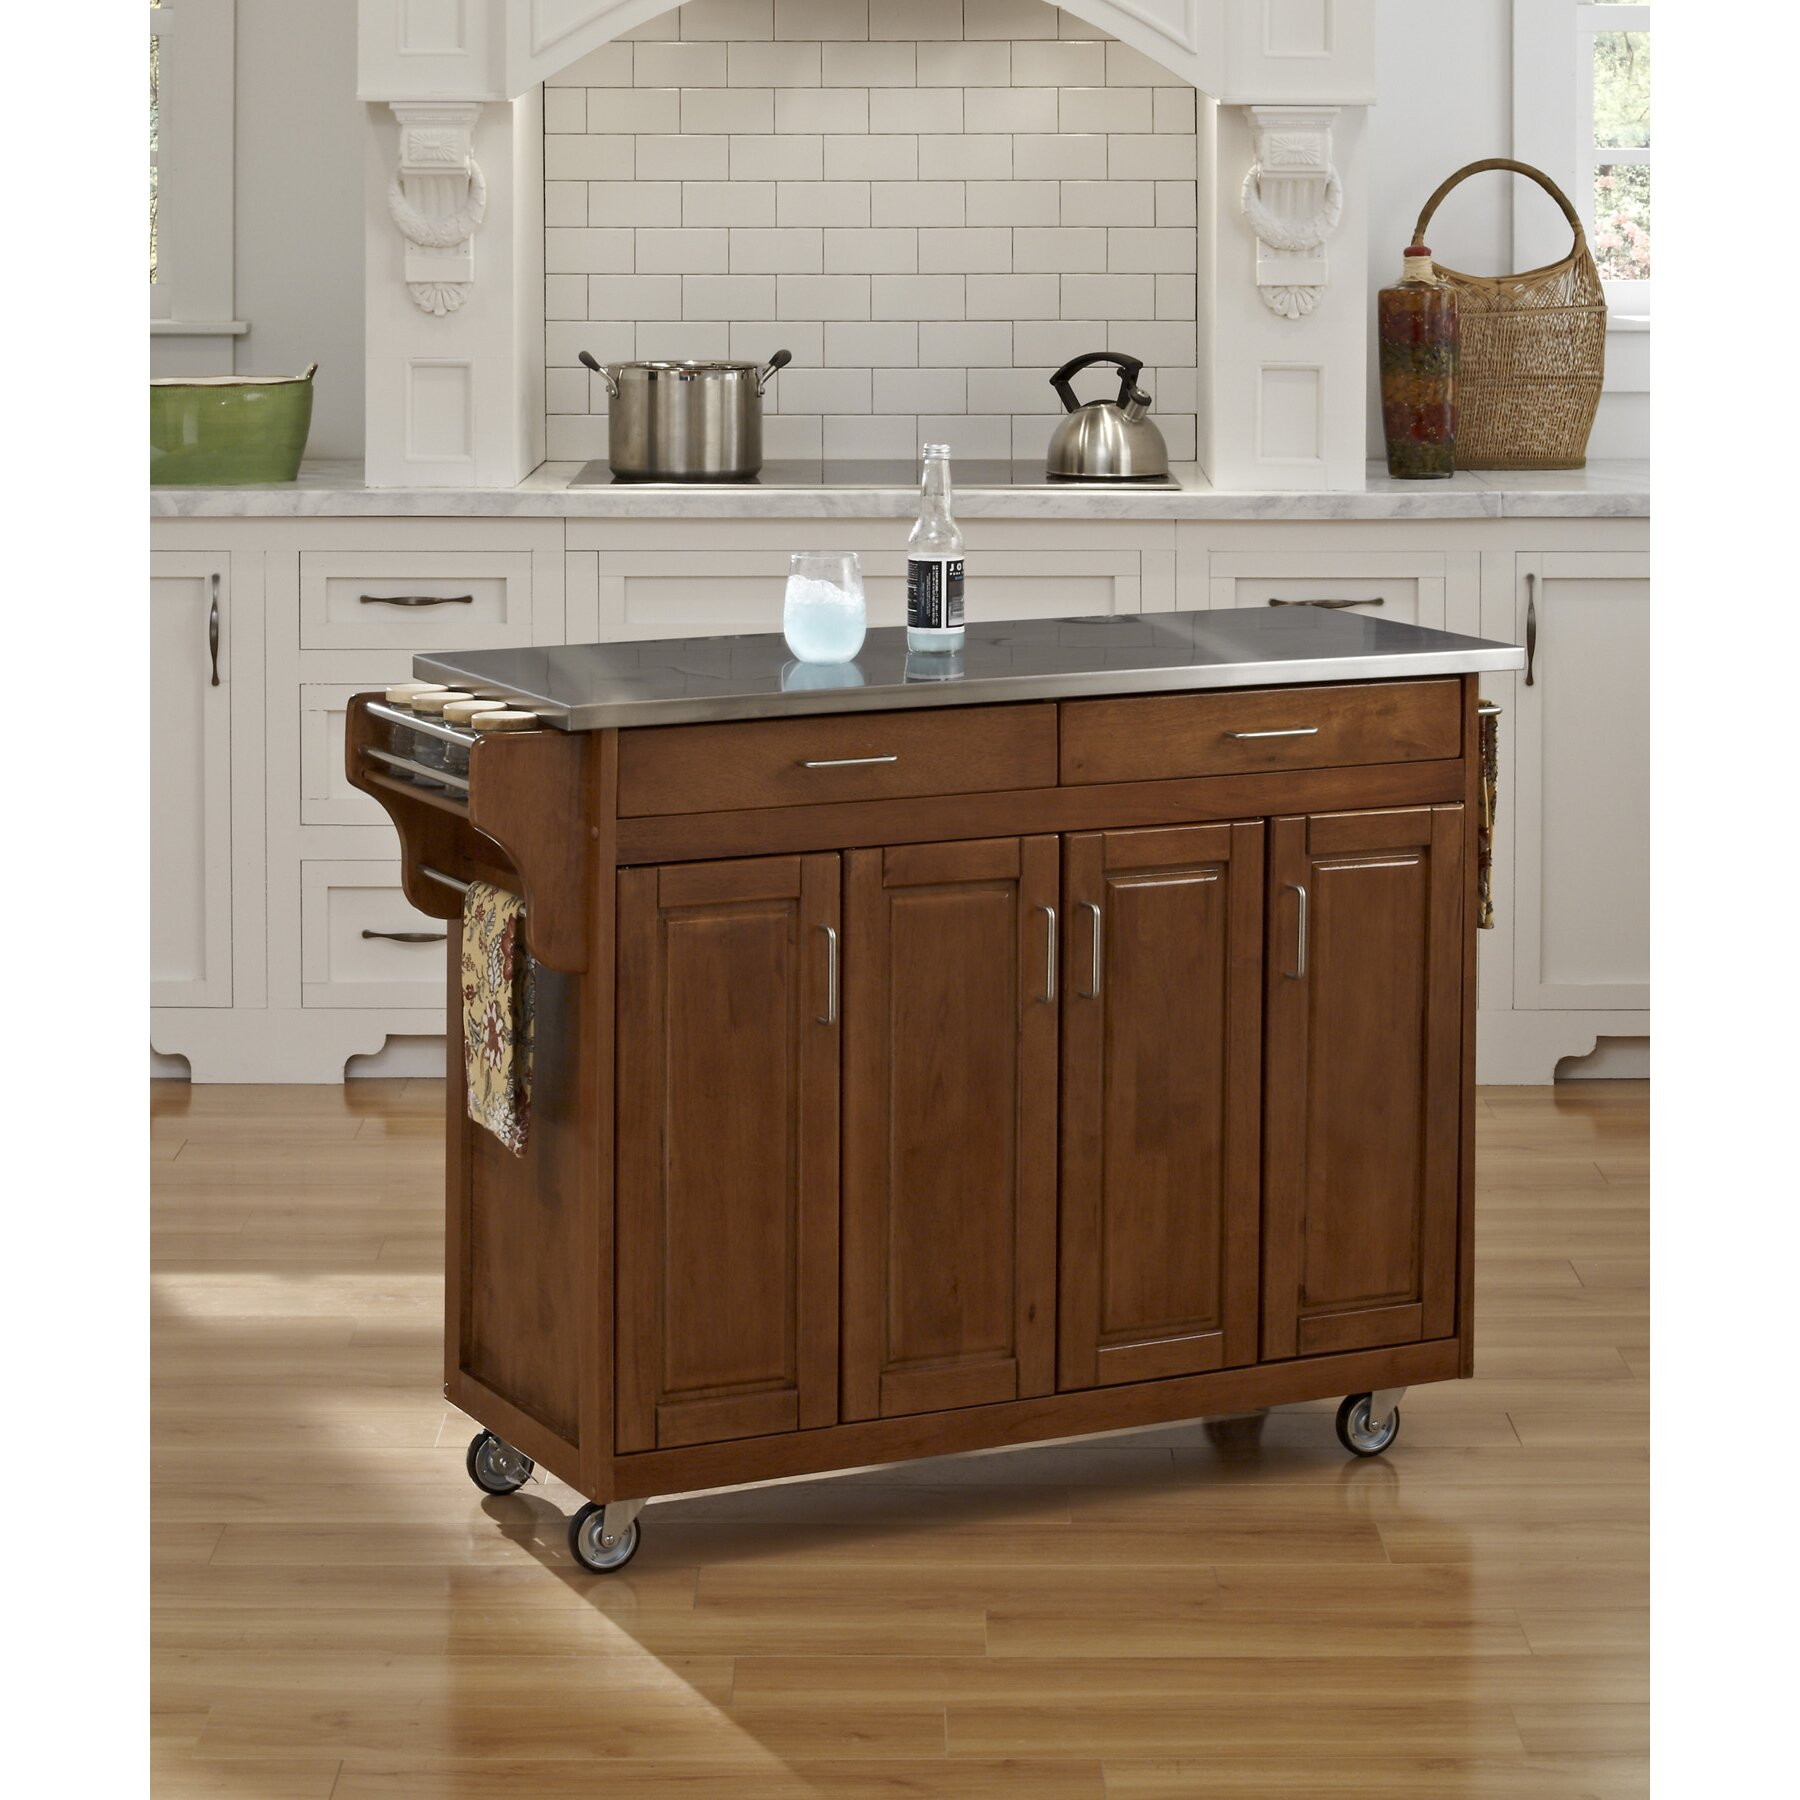 Creating A Kitchen Island: Home Styles Create-a-Cart Kitchen Island With Stainless